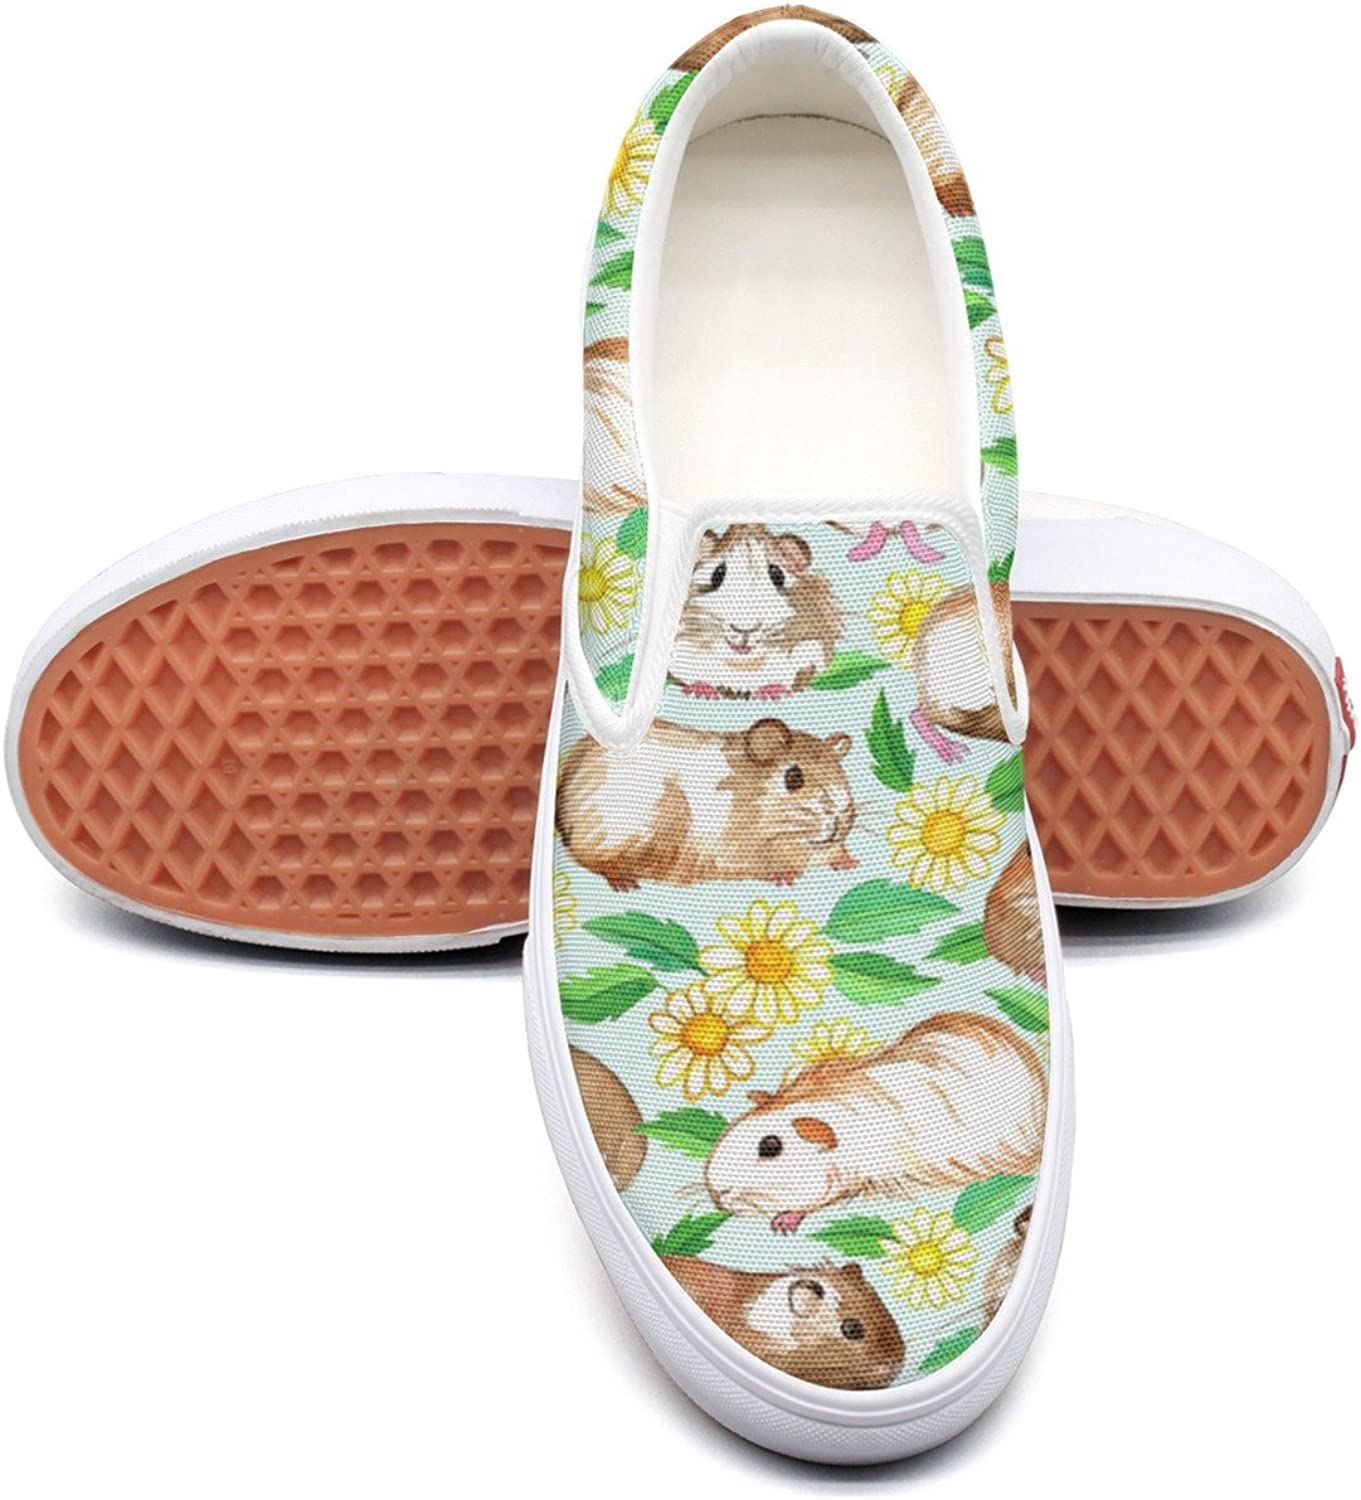 SEERTED Cute Guinea Pigs and Daisies Floral Comfortable Sneakers for Women for Work